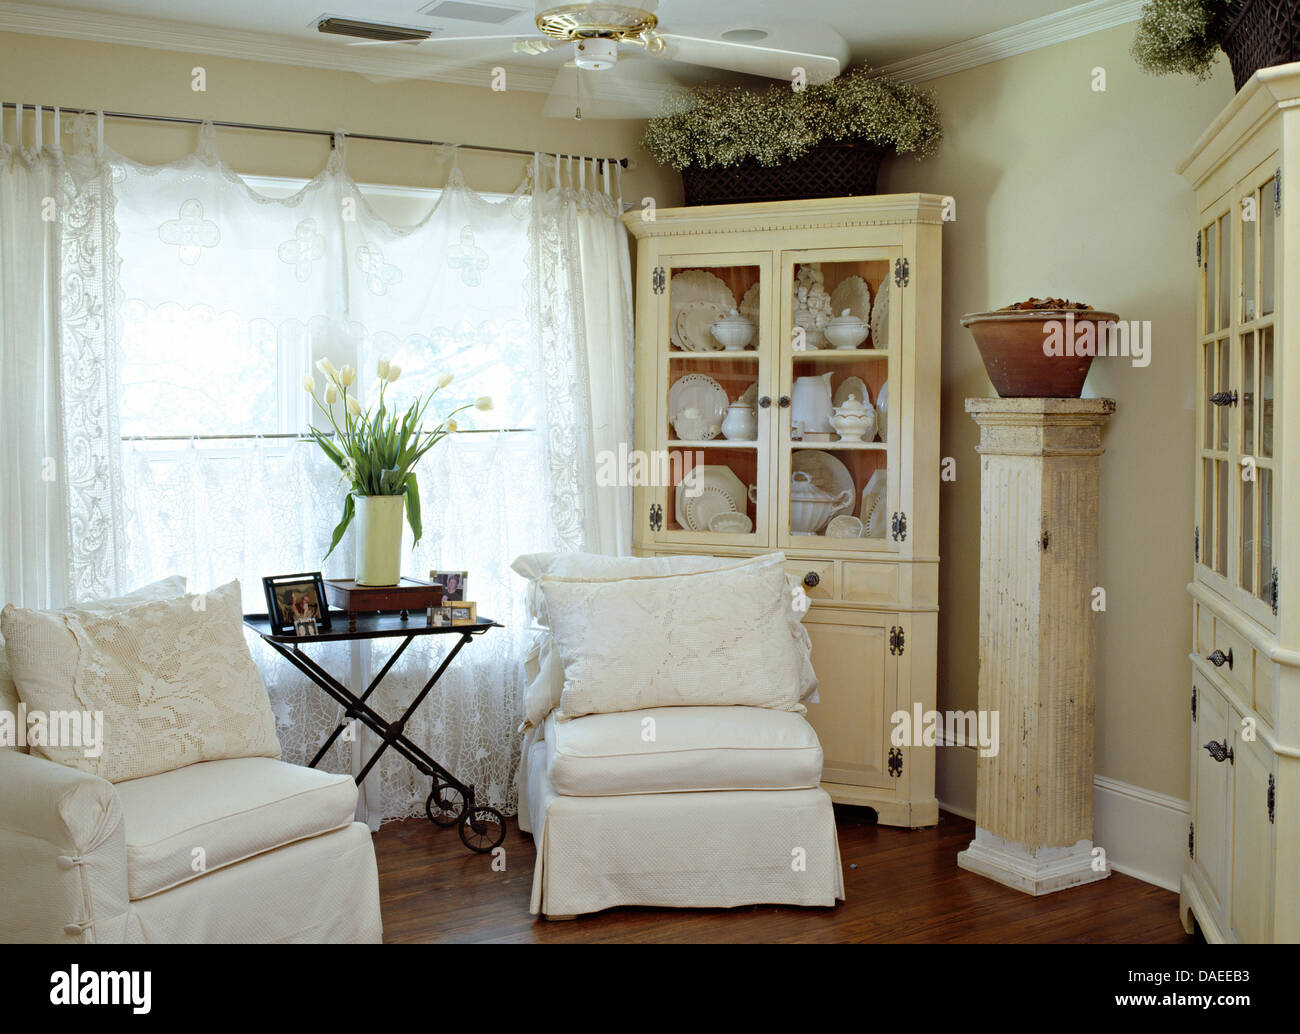 Cottage curtains - Stock Photo White Loose Covers On Chairs In Front Of Window With Lace Curtains In Cottage Living Room With Painted Dresser And Tall Pedestal